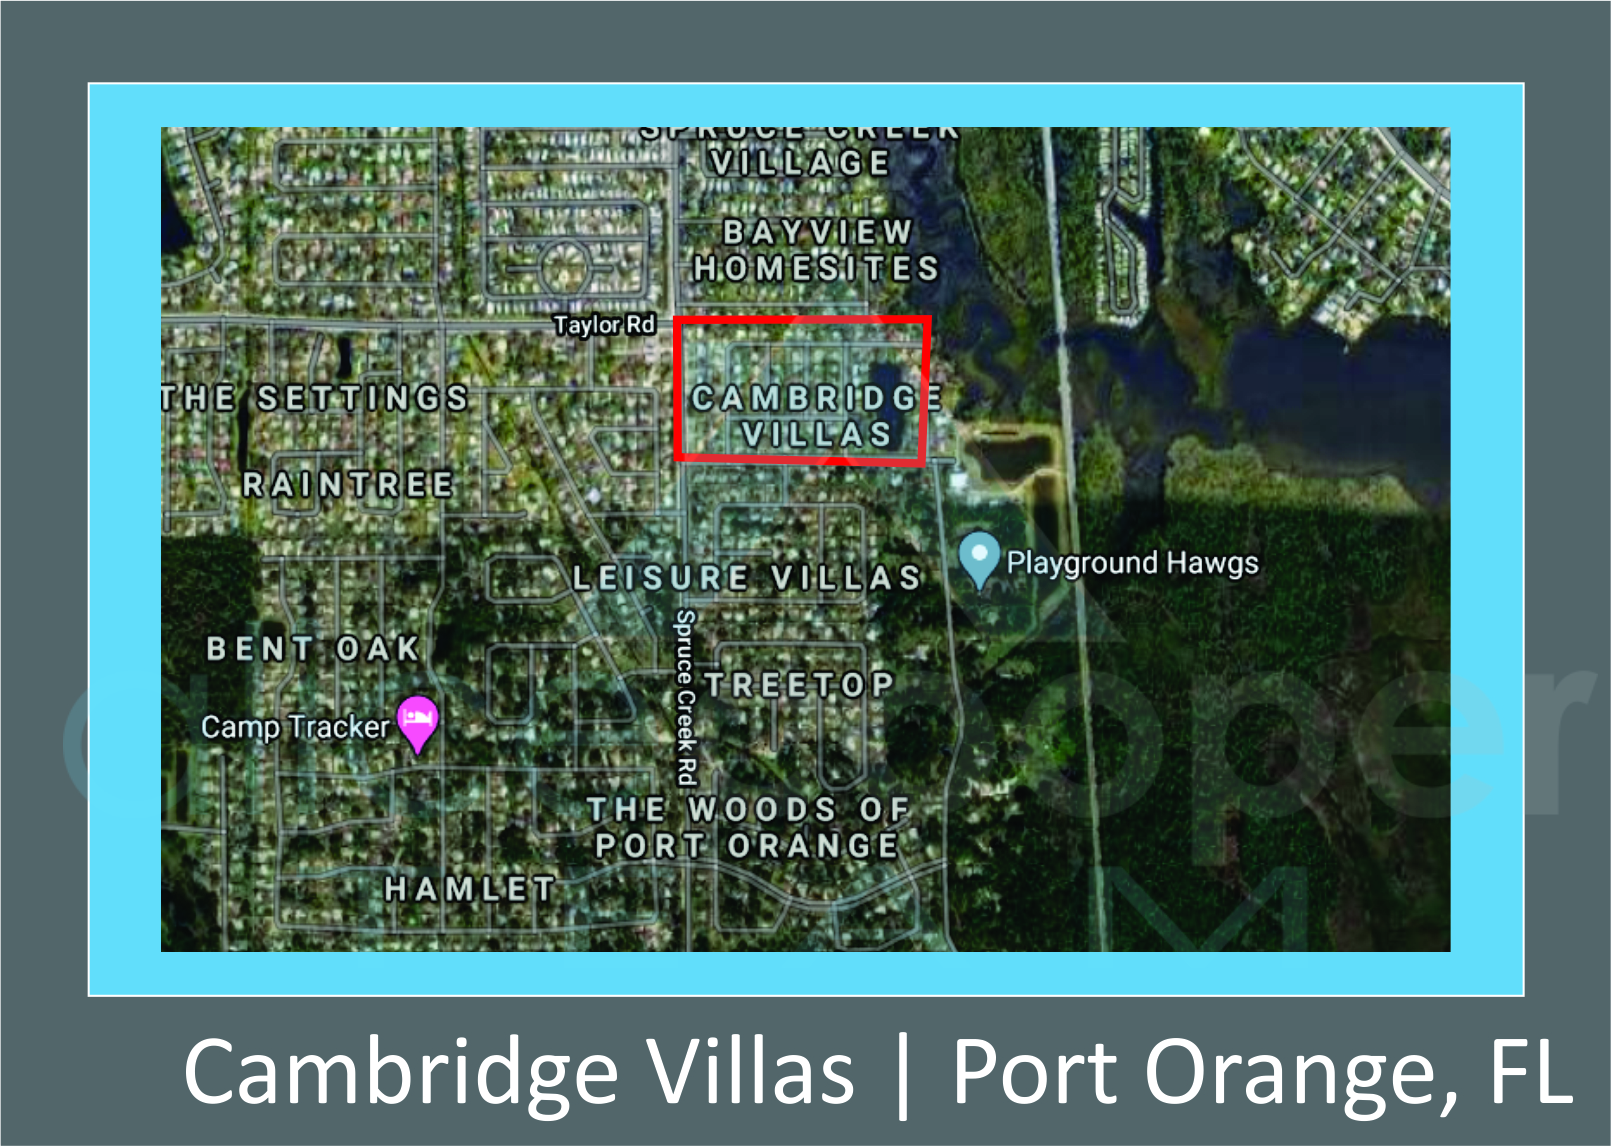 Map of Cambridge Villas, Port Orange, FL